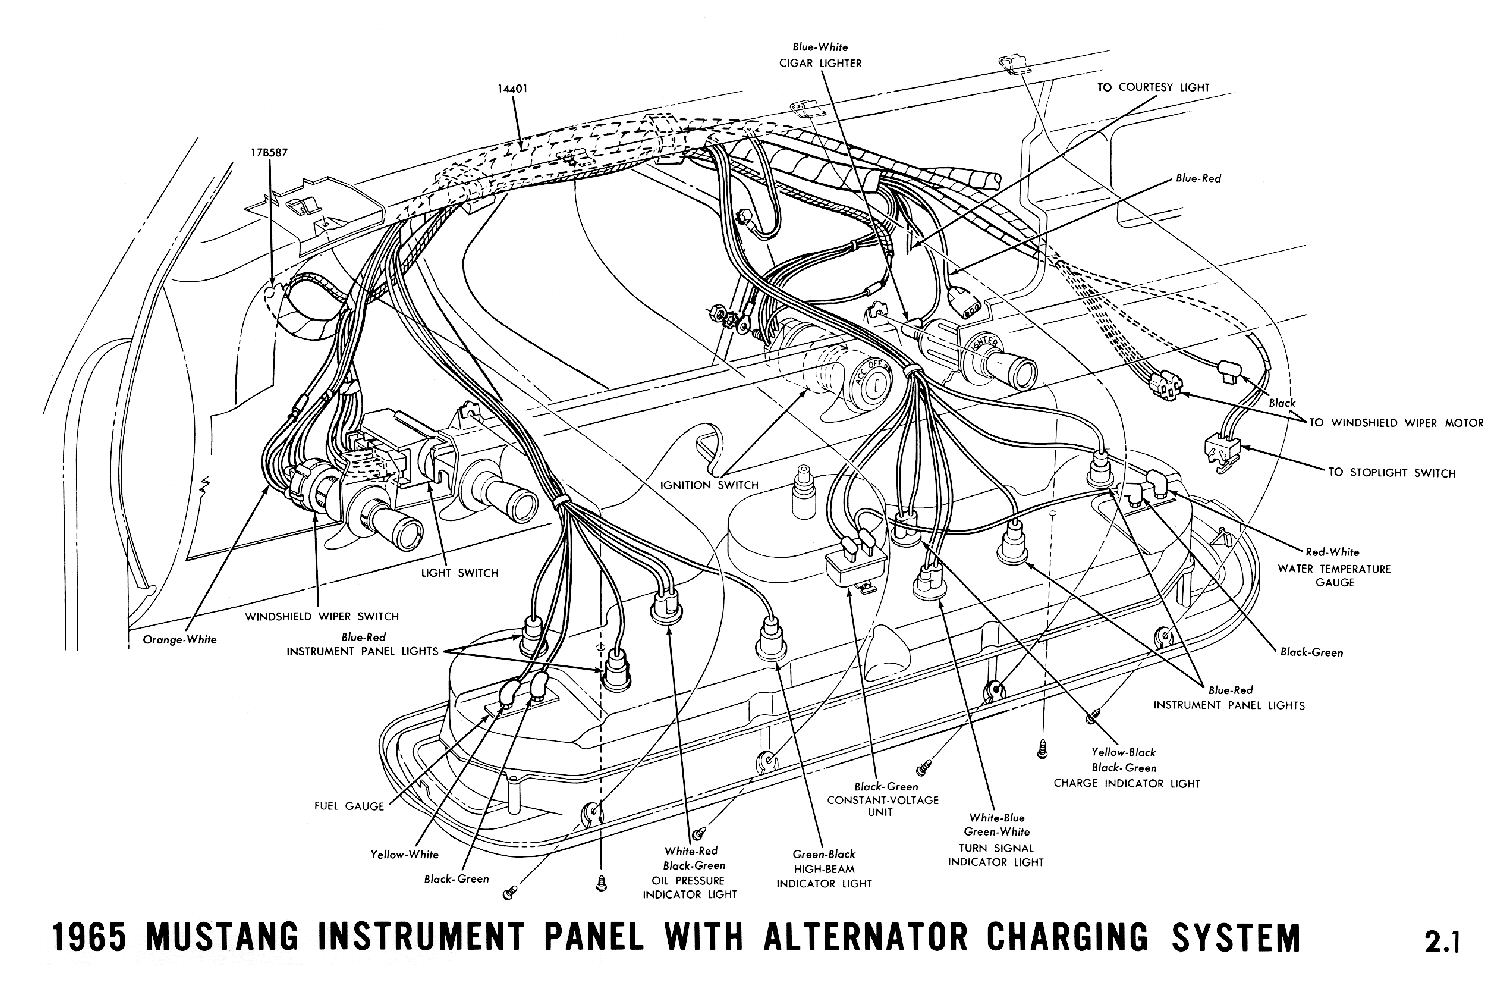 1965a 1965 mustang wiring diagrams average joe restoration mustang wiring harness at crackthecode.co